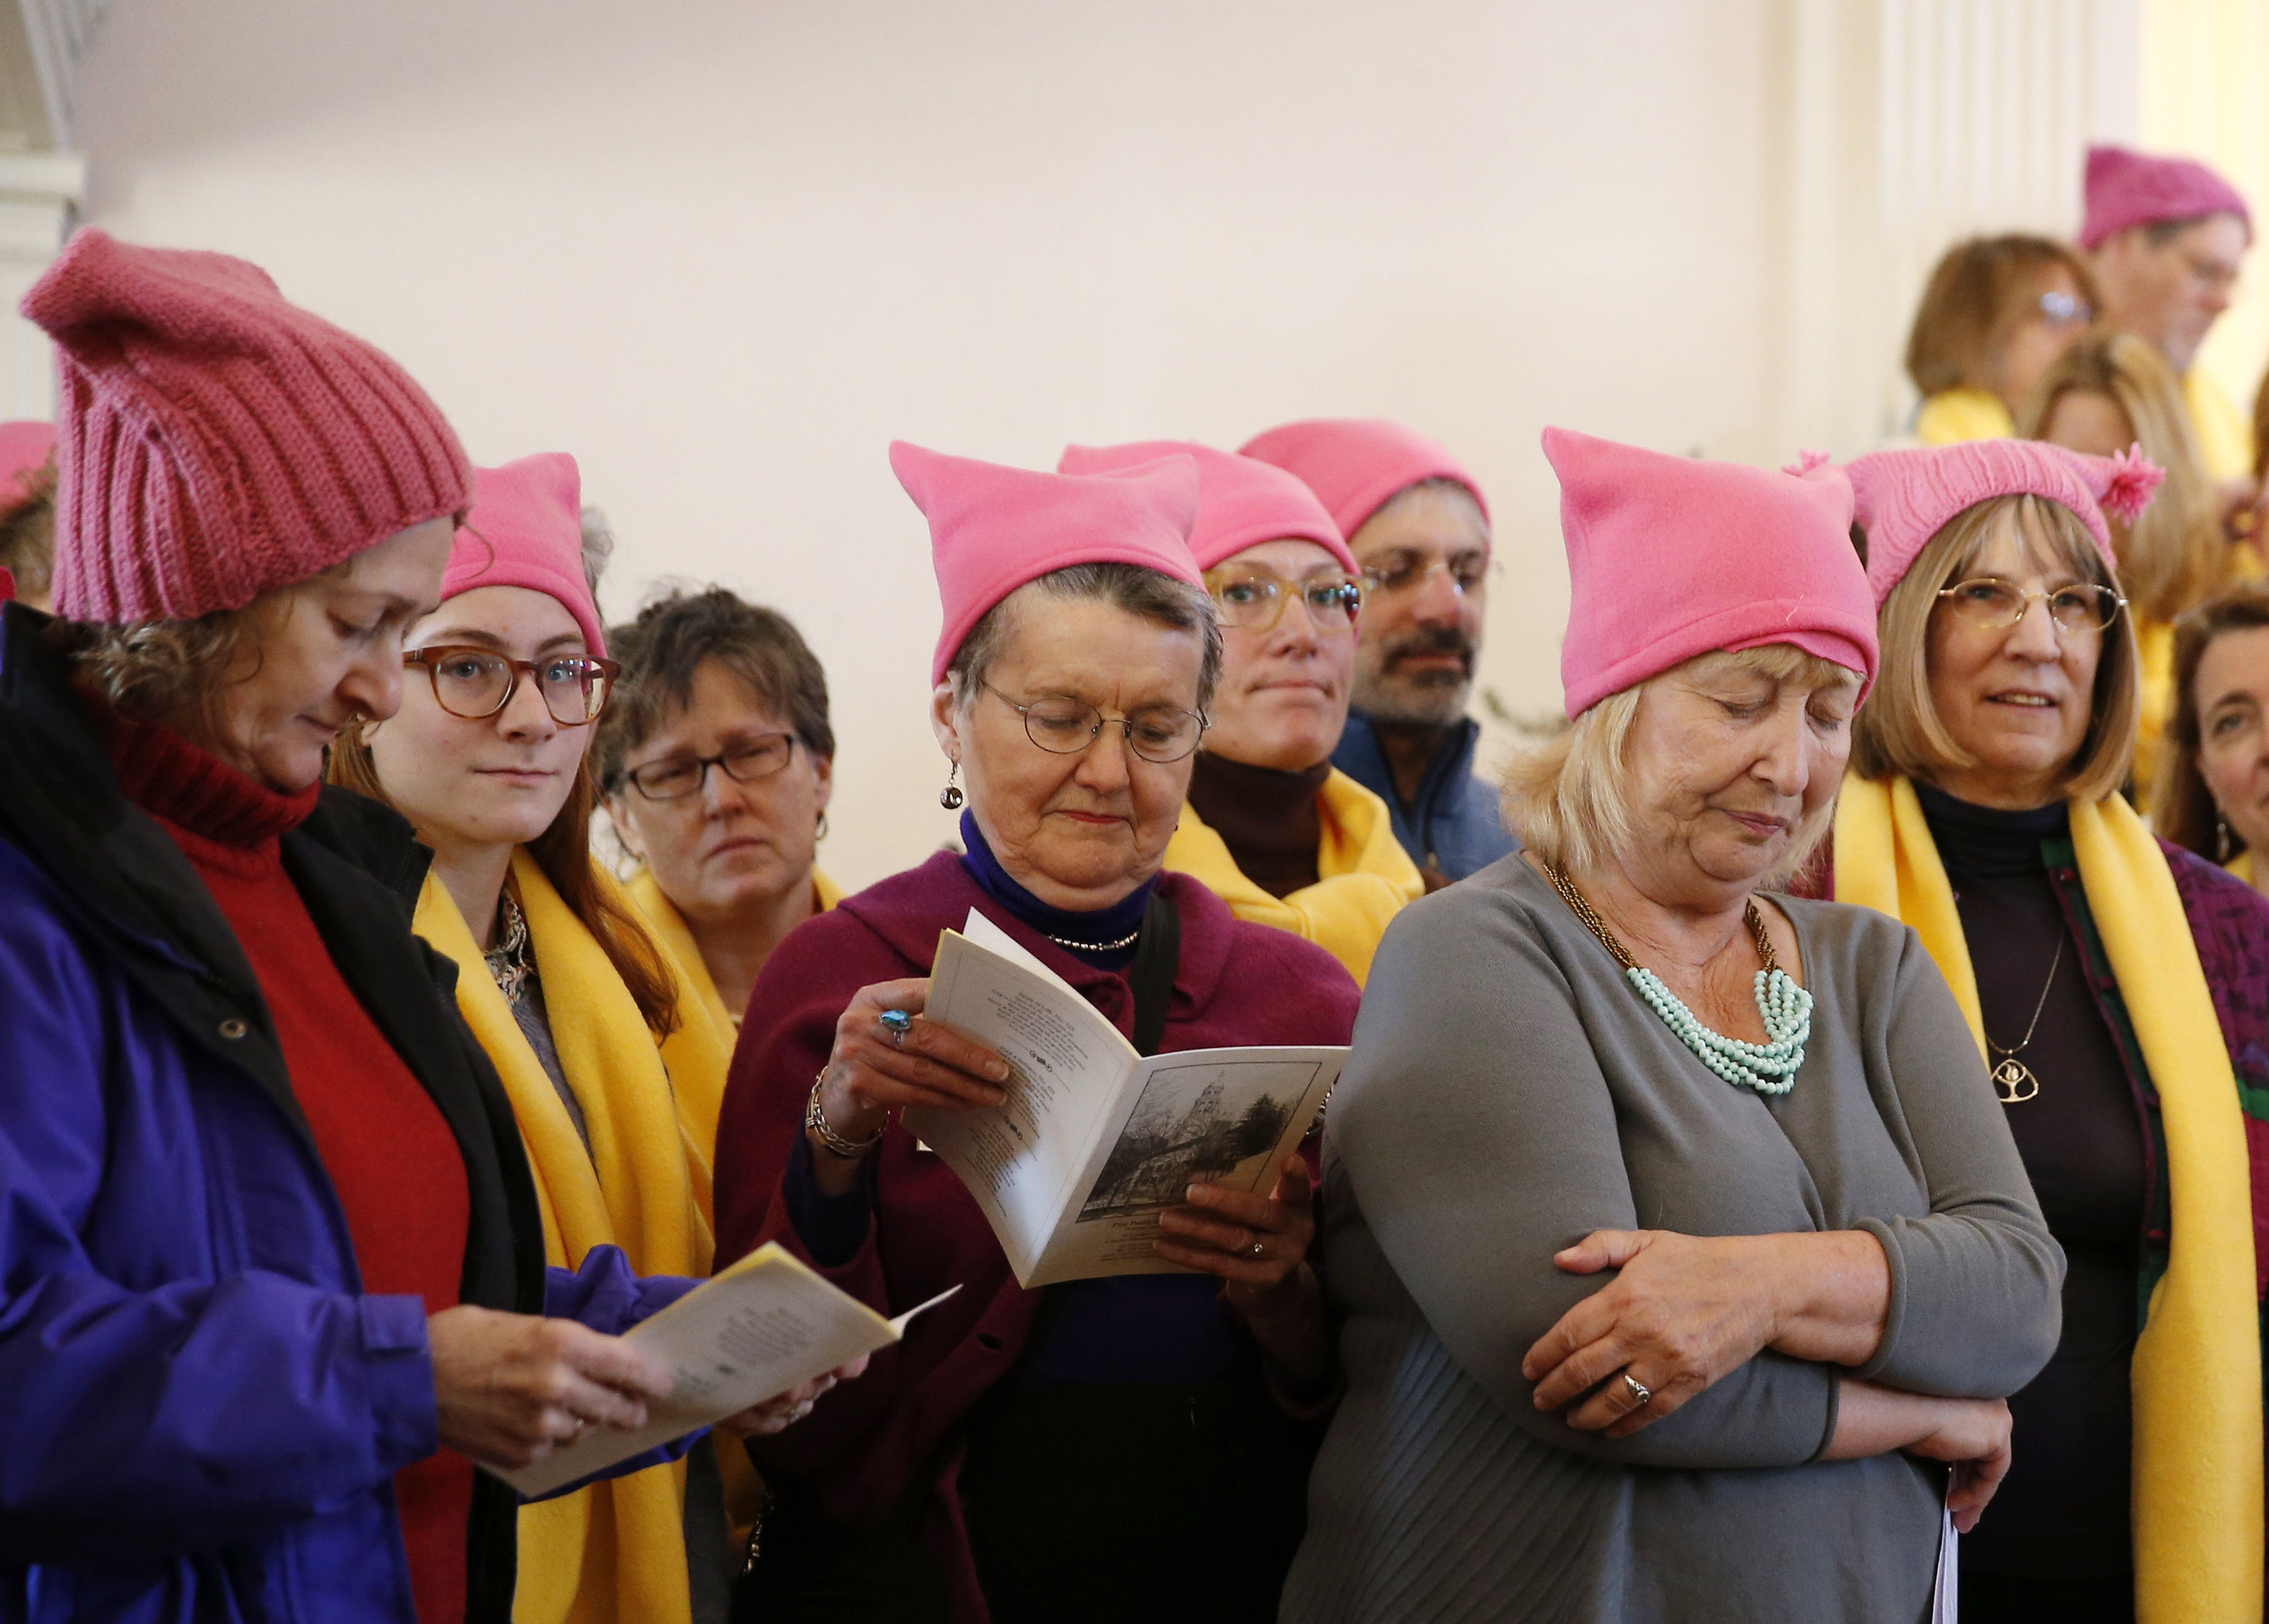 cac28ccc0a9fc Knitting protesters grab back at Trump with pink cat hats - The Boston Globe